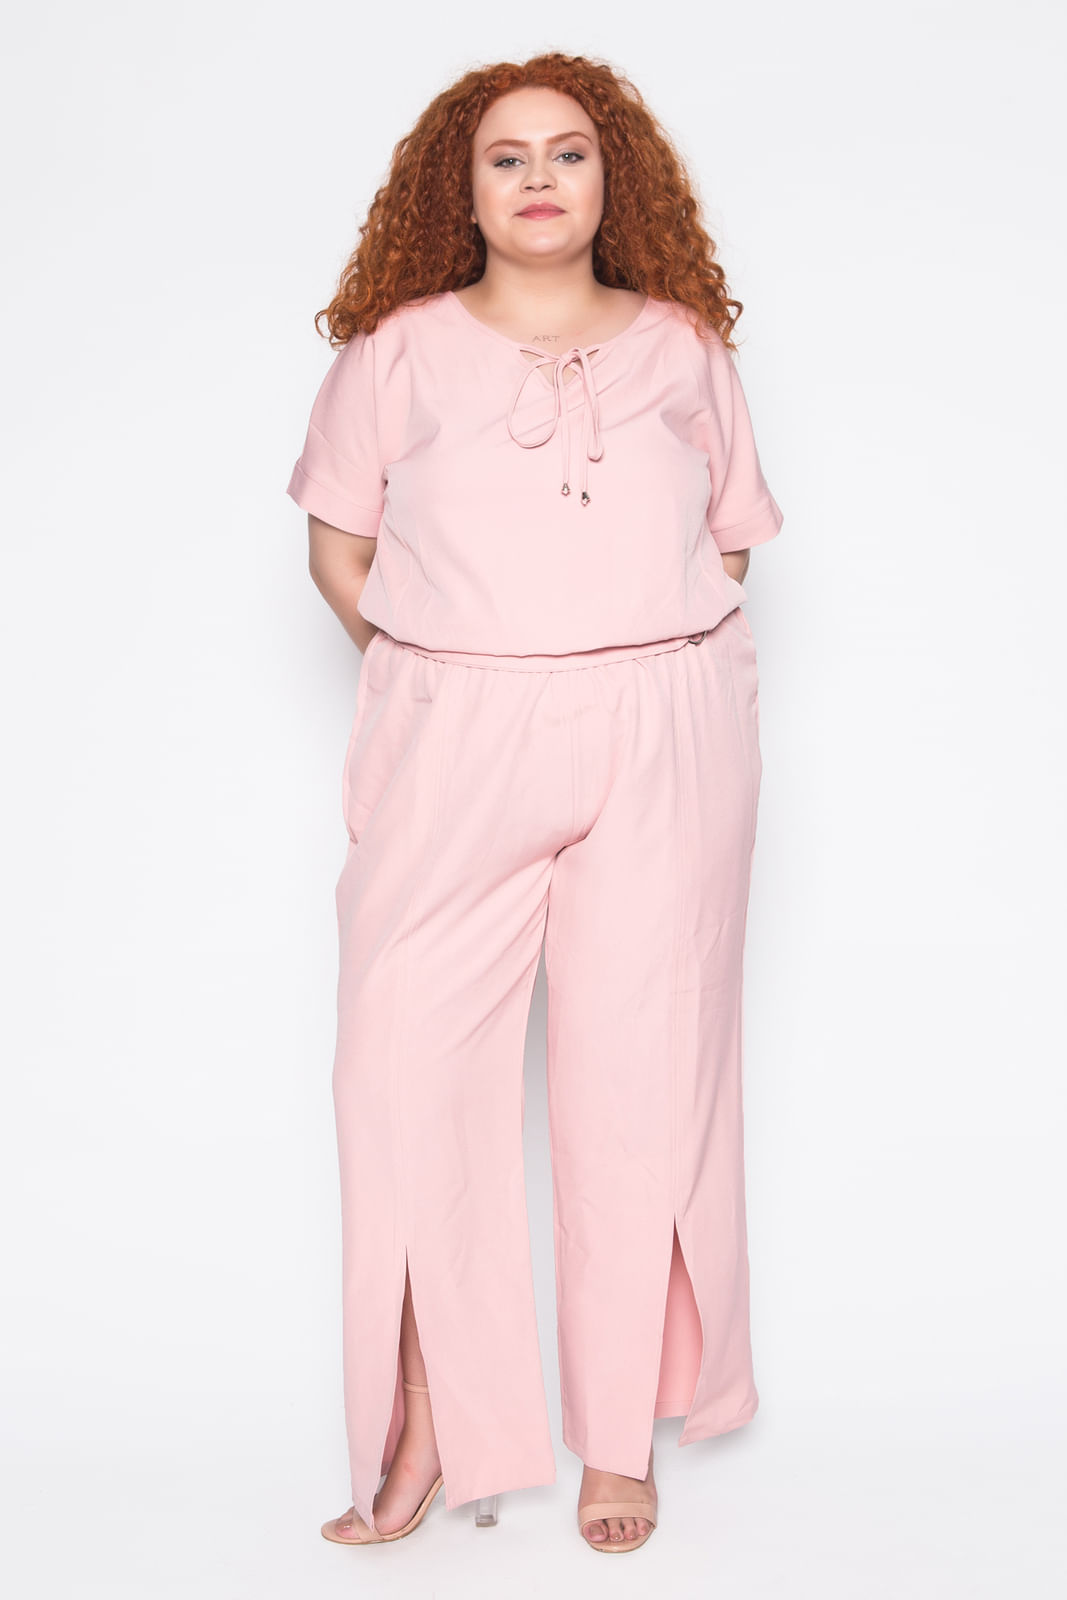 9811_Macacao_Plus_Size_Liso_Rose_1